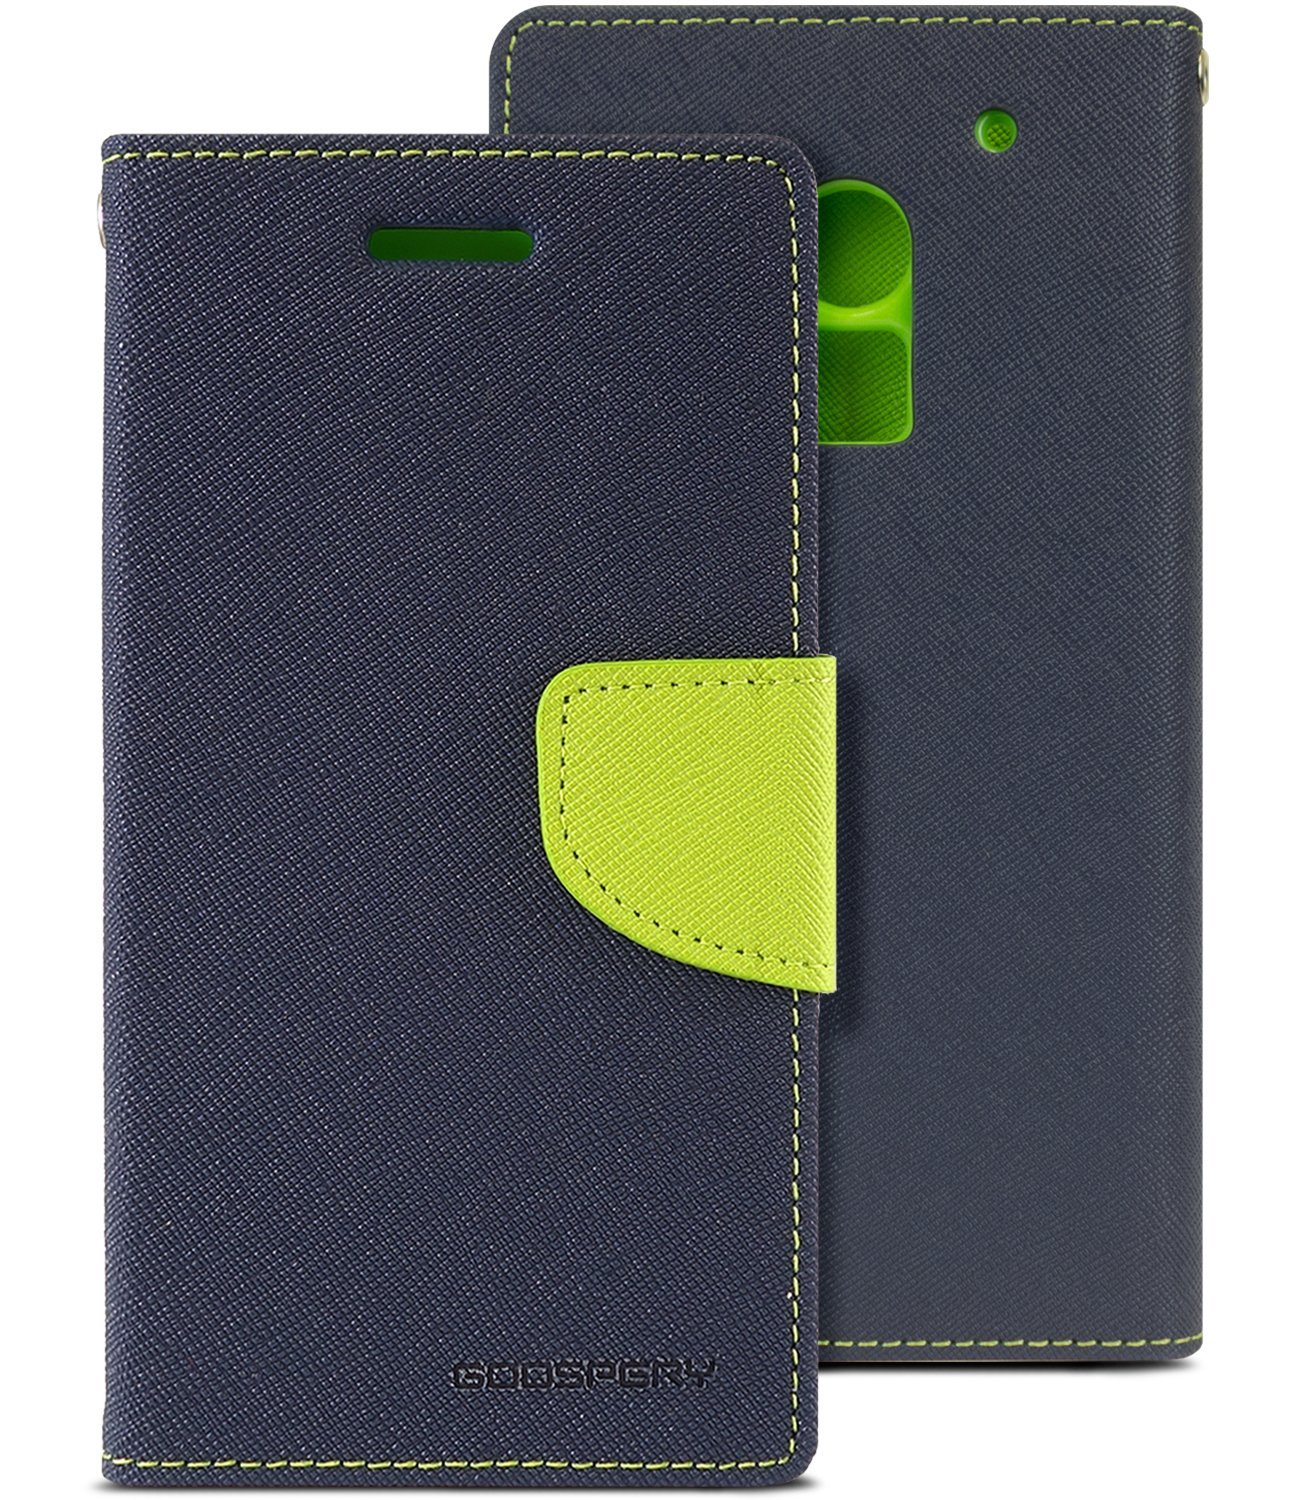 Htc One Max T6 Case Drop Protection Goospery Fancy Samsung Galaxy S8 Canvas Diary Navy Wallet Pu Saffiano Leather Id Card Slots Cash Slot Stand Flip Cover